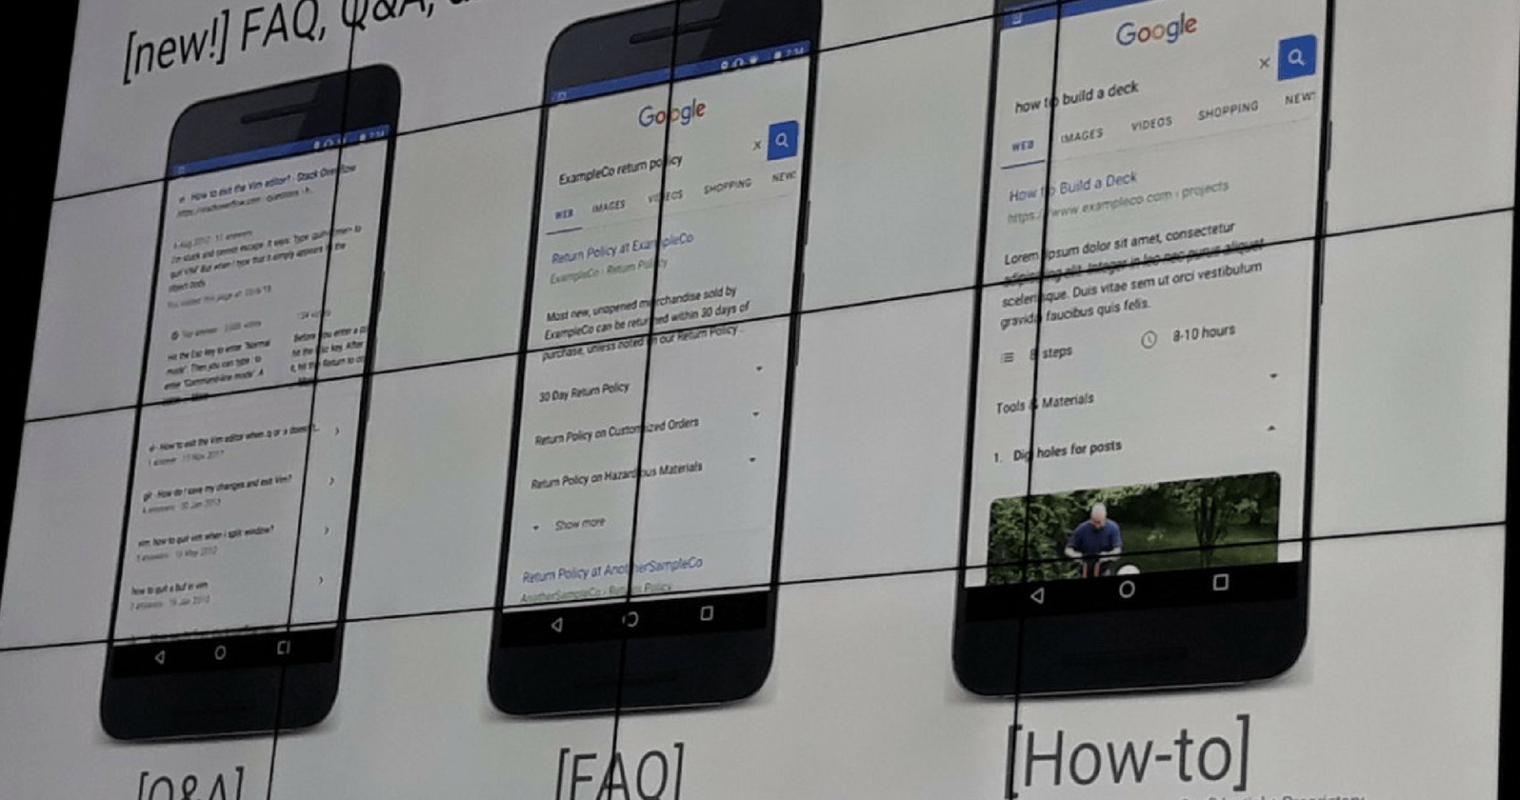 Google to Add Q&A, FAQ, and How-To Features in Search Results